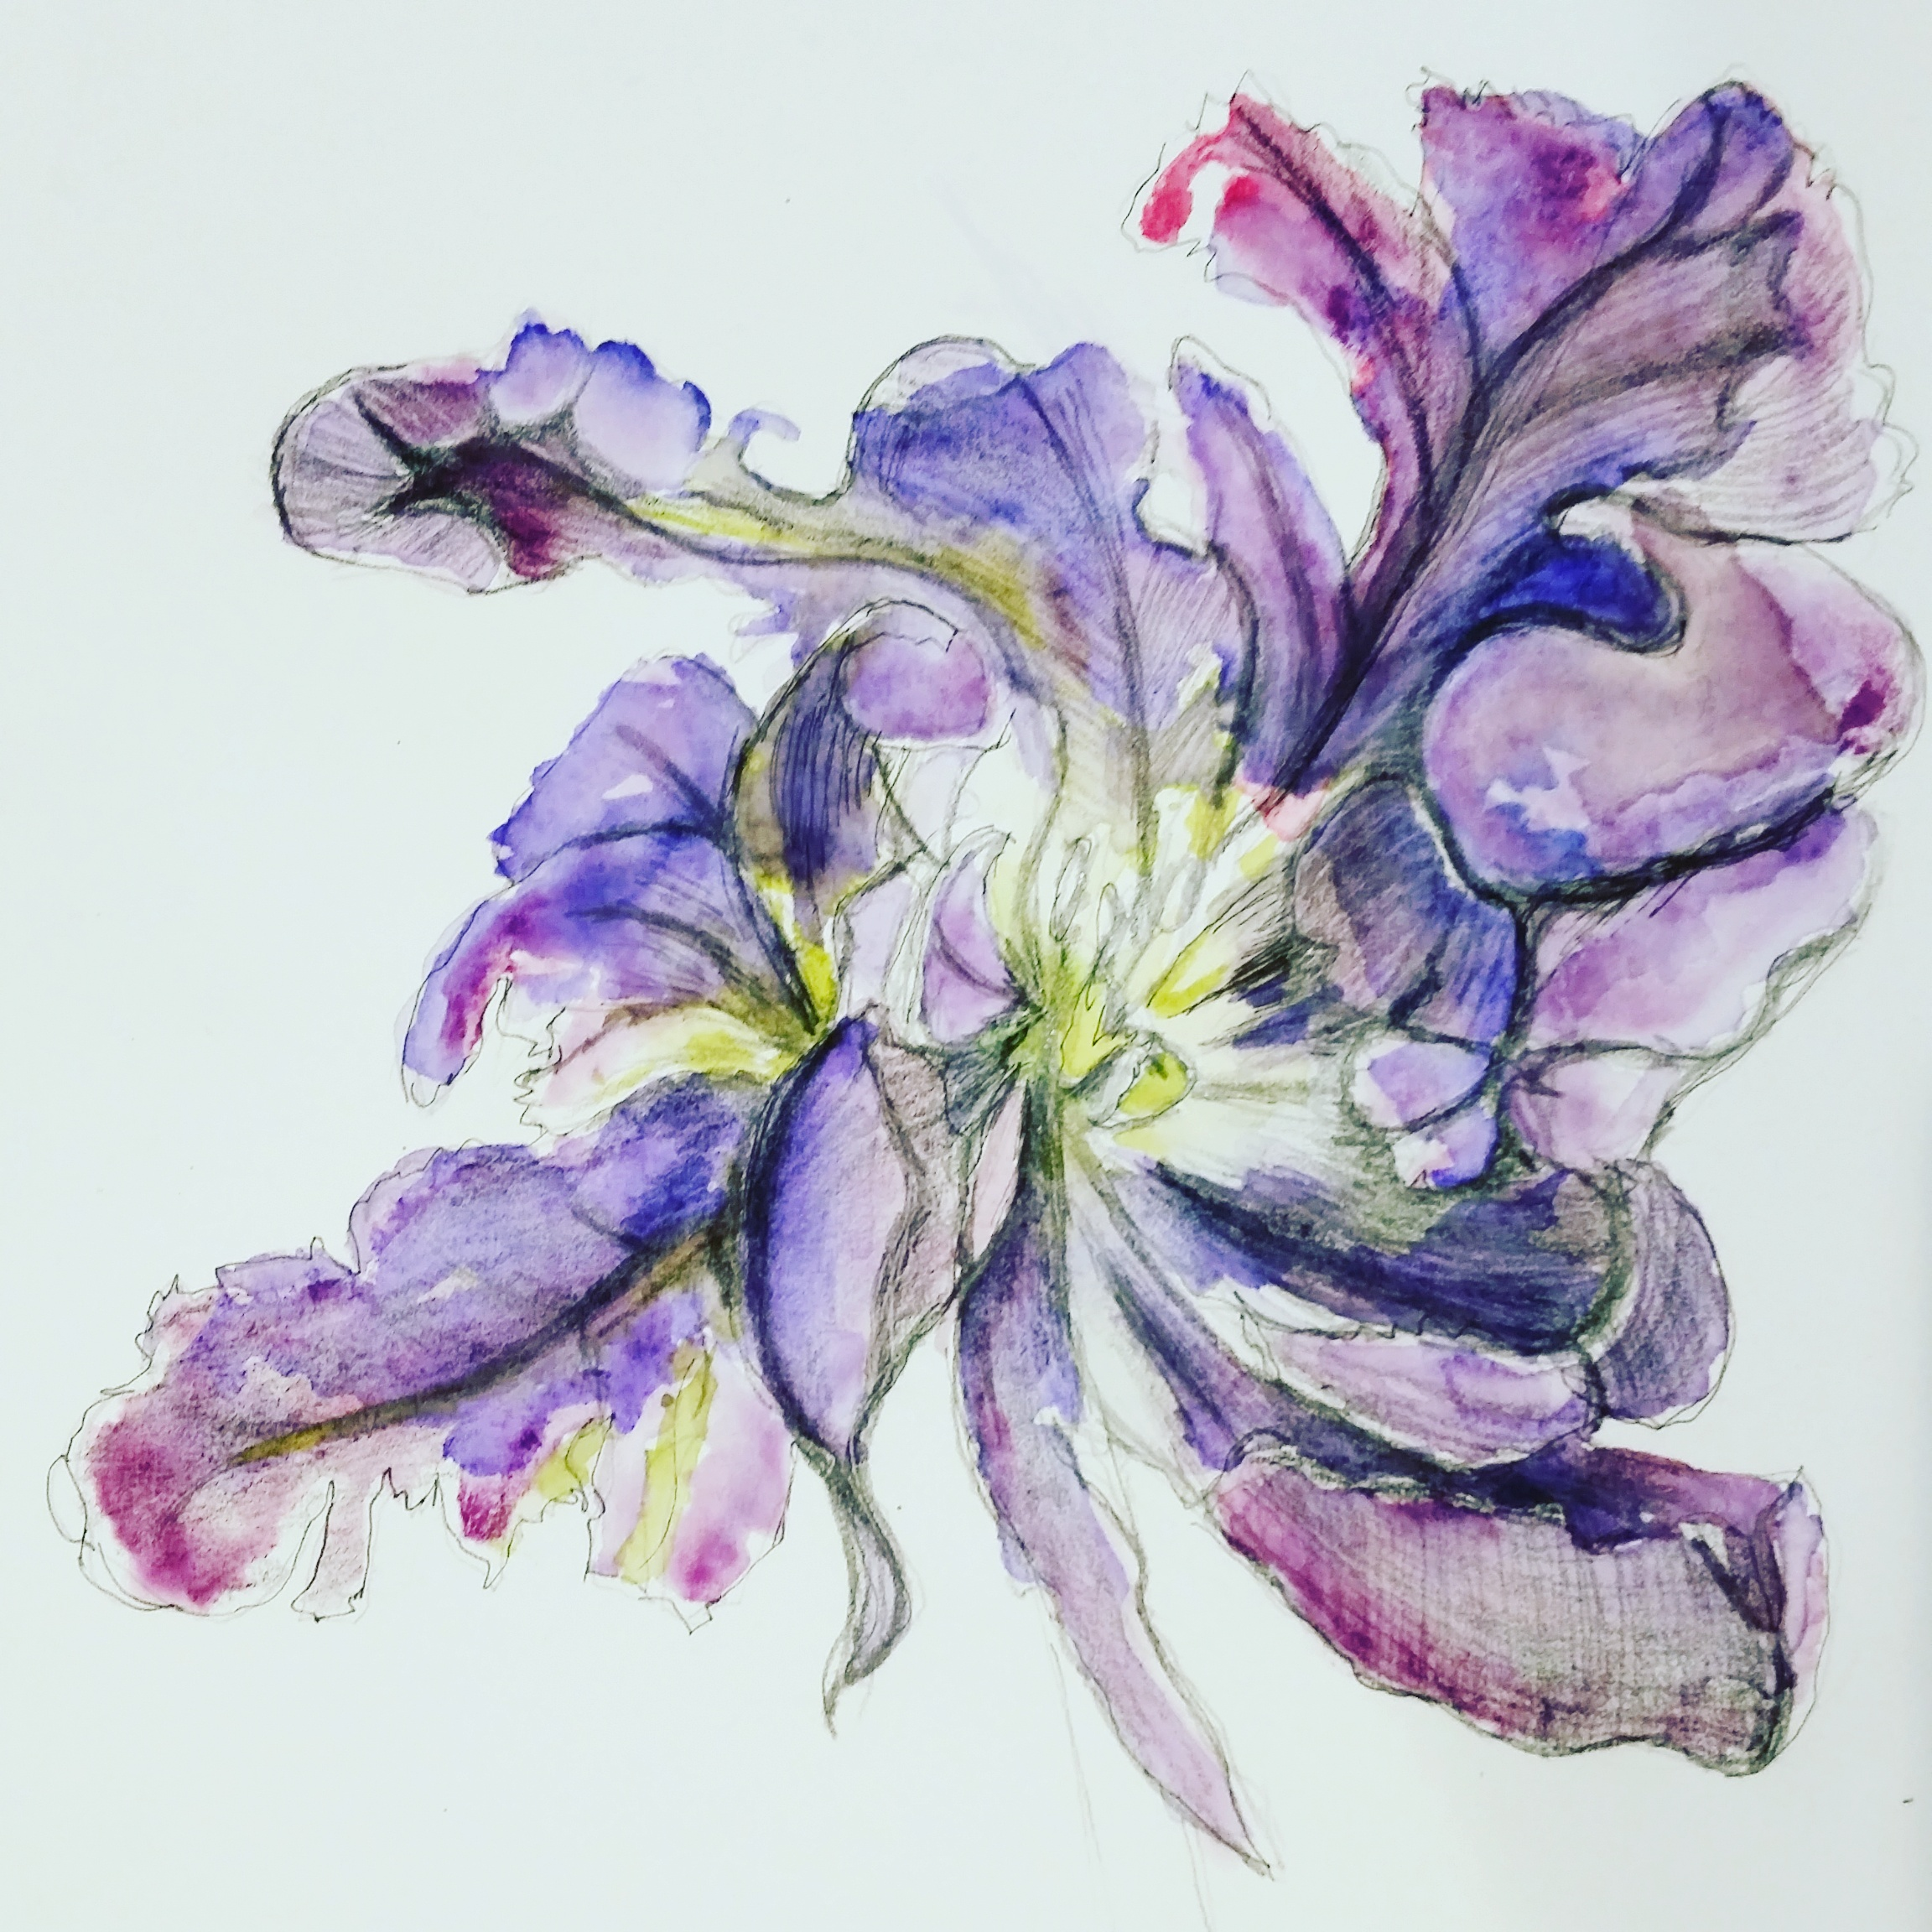 Flowers sketches using pencil and watercolor GBCStyle